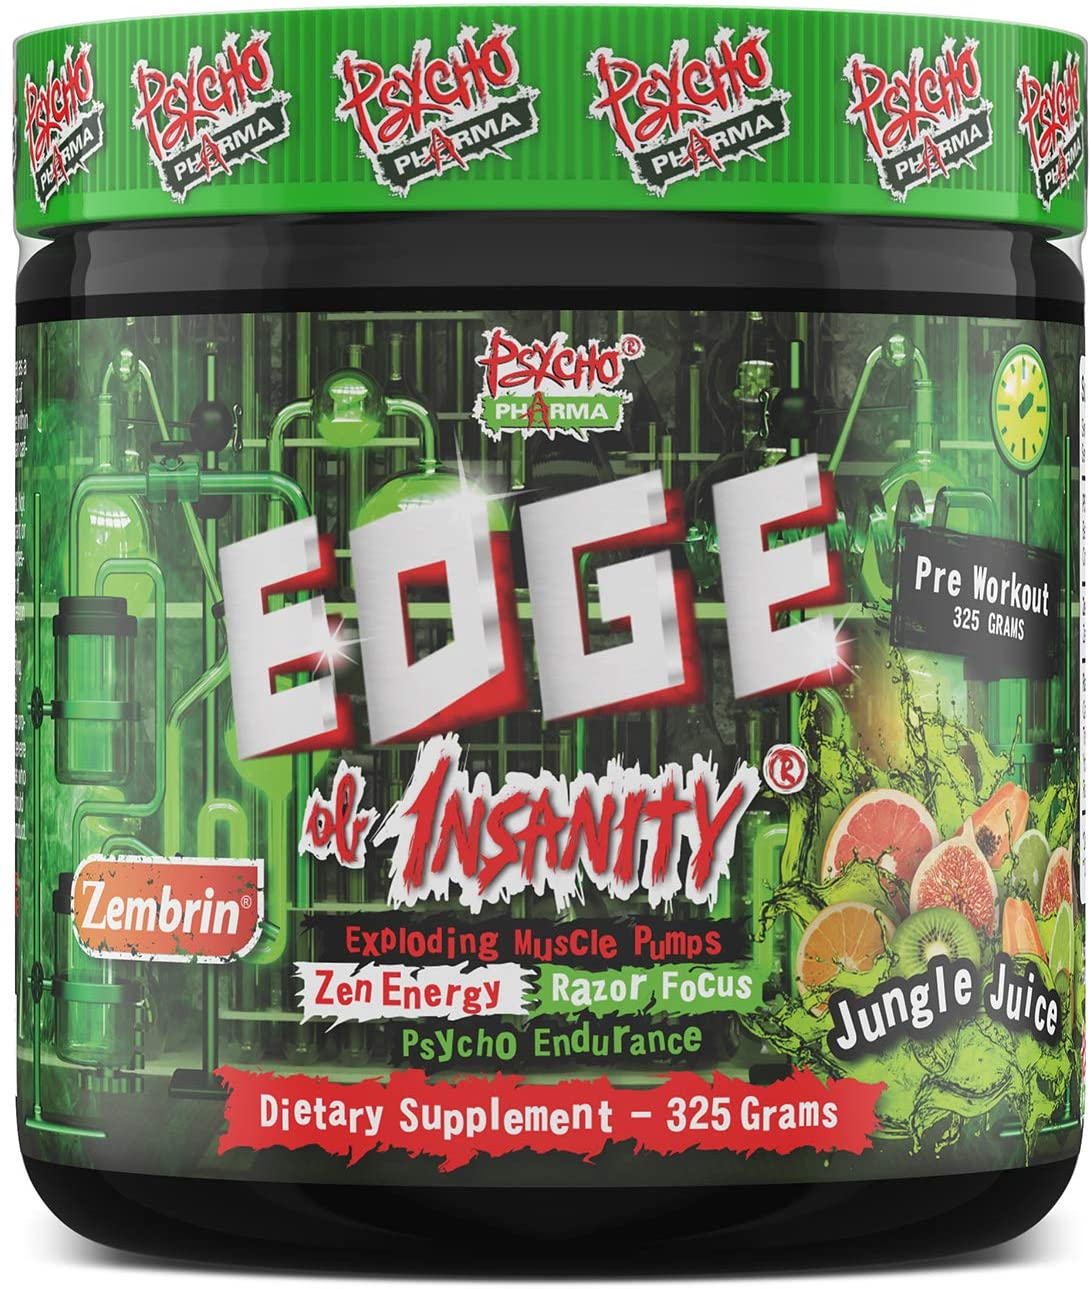 New New Perfect Powders with Zembrin Zen Energy Feel Good Focus #1 Strongest PWO Psycho Pharma Edge of Insanity - Most Intense Workout Powder, Focus & 8G Citrulline Pumps - 325 Gram (Jungle Juice)